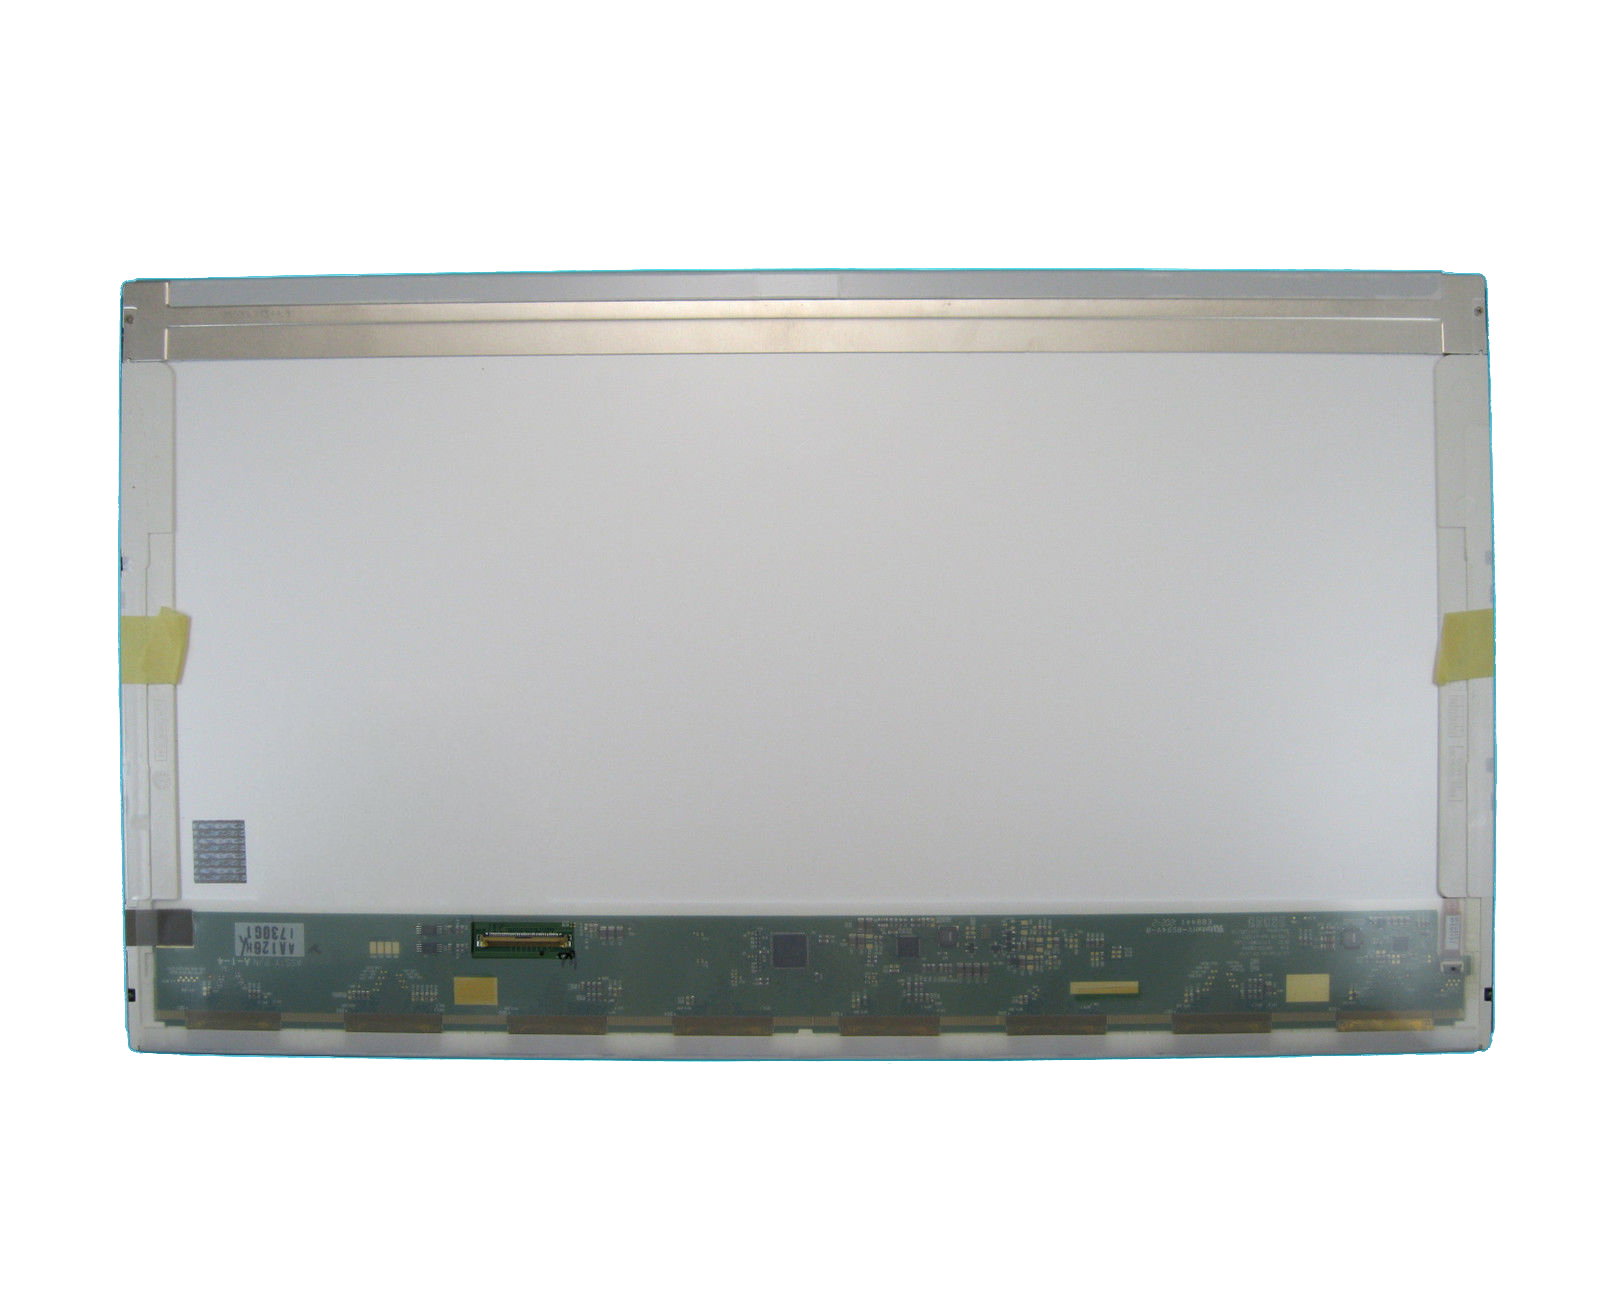 QuYing Laptop LCD Screen for ACER ASPIRE E1-771 E1-771G E1-731 V3-771 V3-771G V3-731 V3-731G P7YE5 SERIES (17.3 1600x900 40pin) jigu laptop battery for acer aspire v3 v3 471g v3 551g v3 571g e1 471 e1 531 e1 571 v3 771g e1 e1 421 e1 431 series